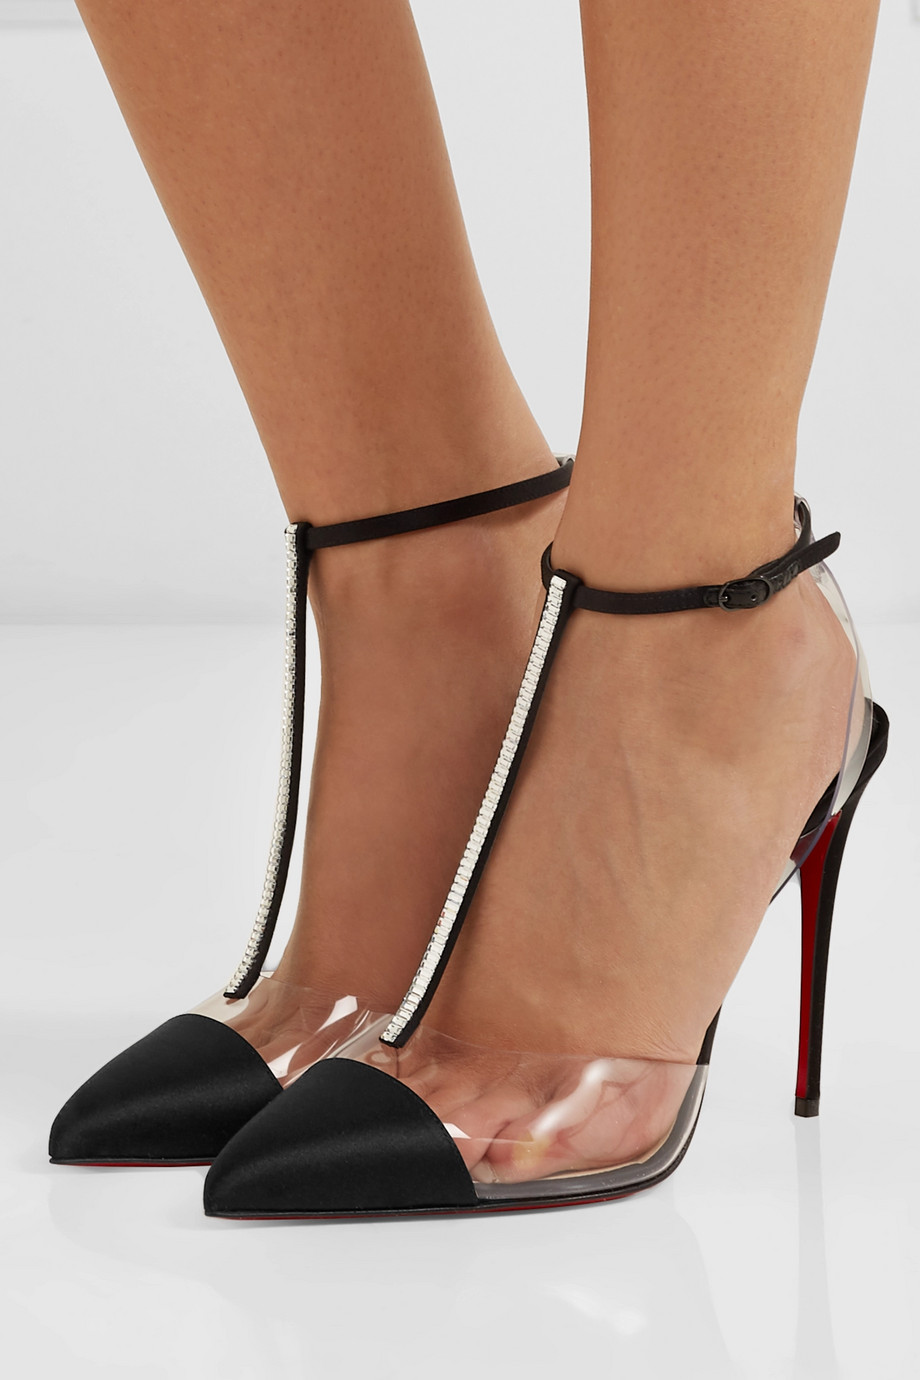 Christian Louboutin Nosy 100 crystal-embellished satin and PVC pumps